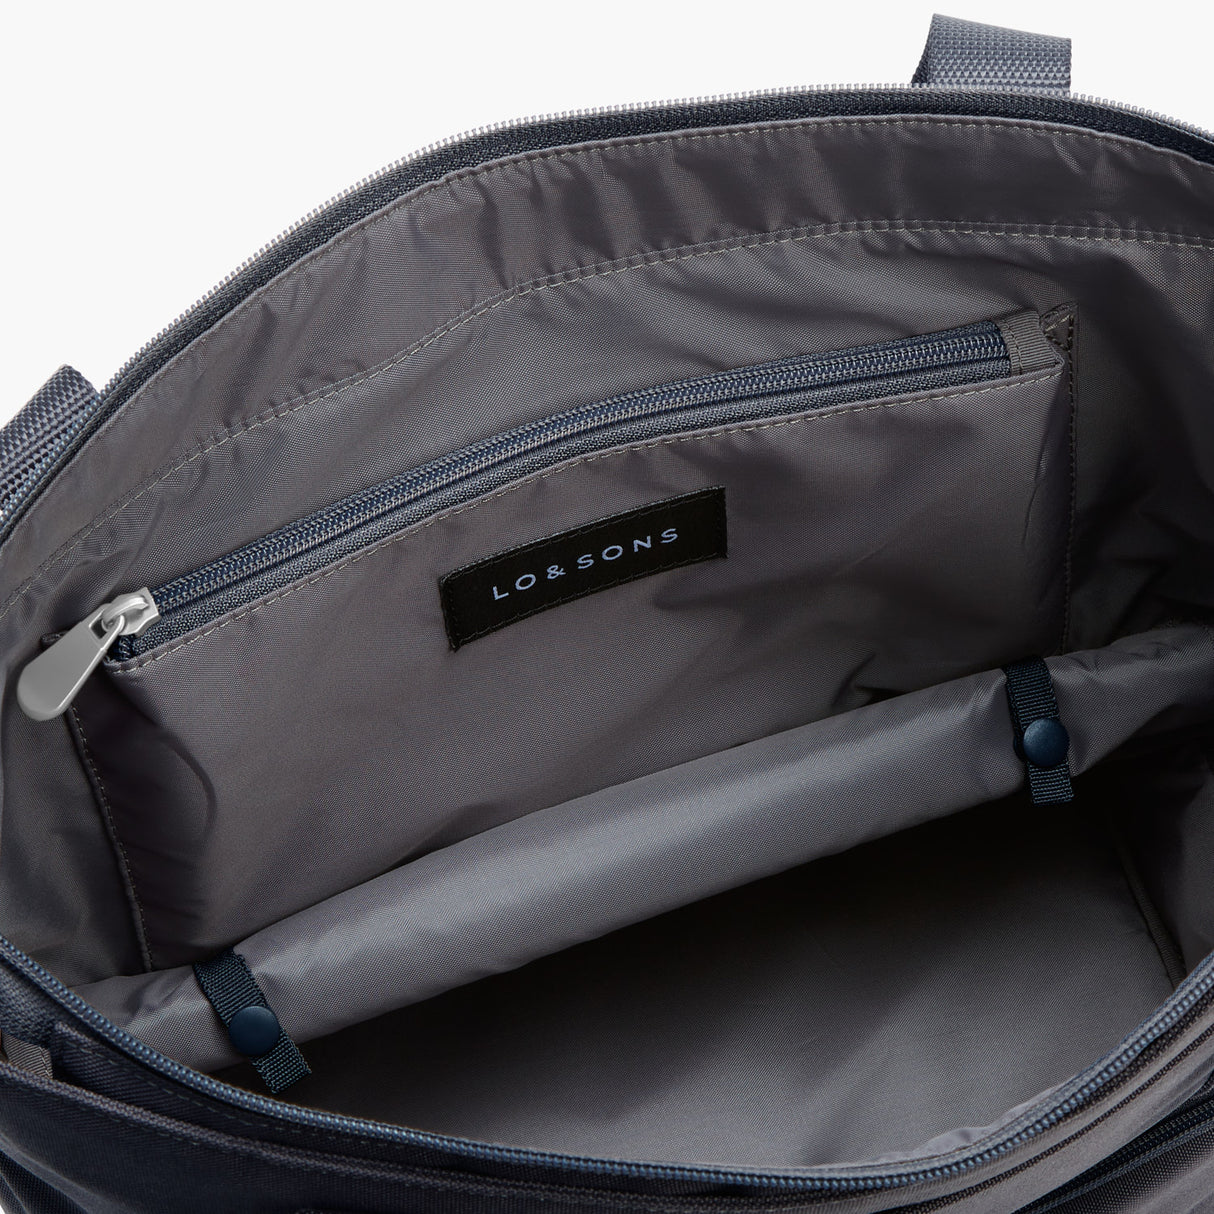 Bottom Pocket Expandable - Catalina Day Tote - 600D Recycled Poly - Deep Navy - Tote - Lo & Sons